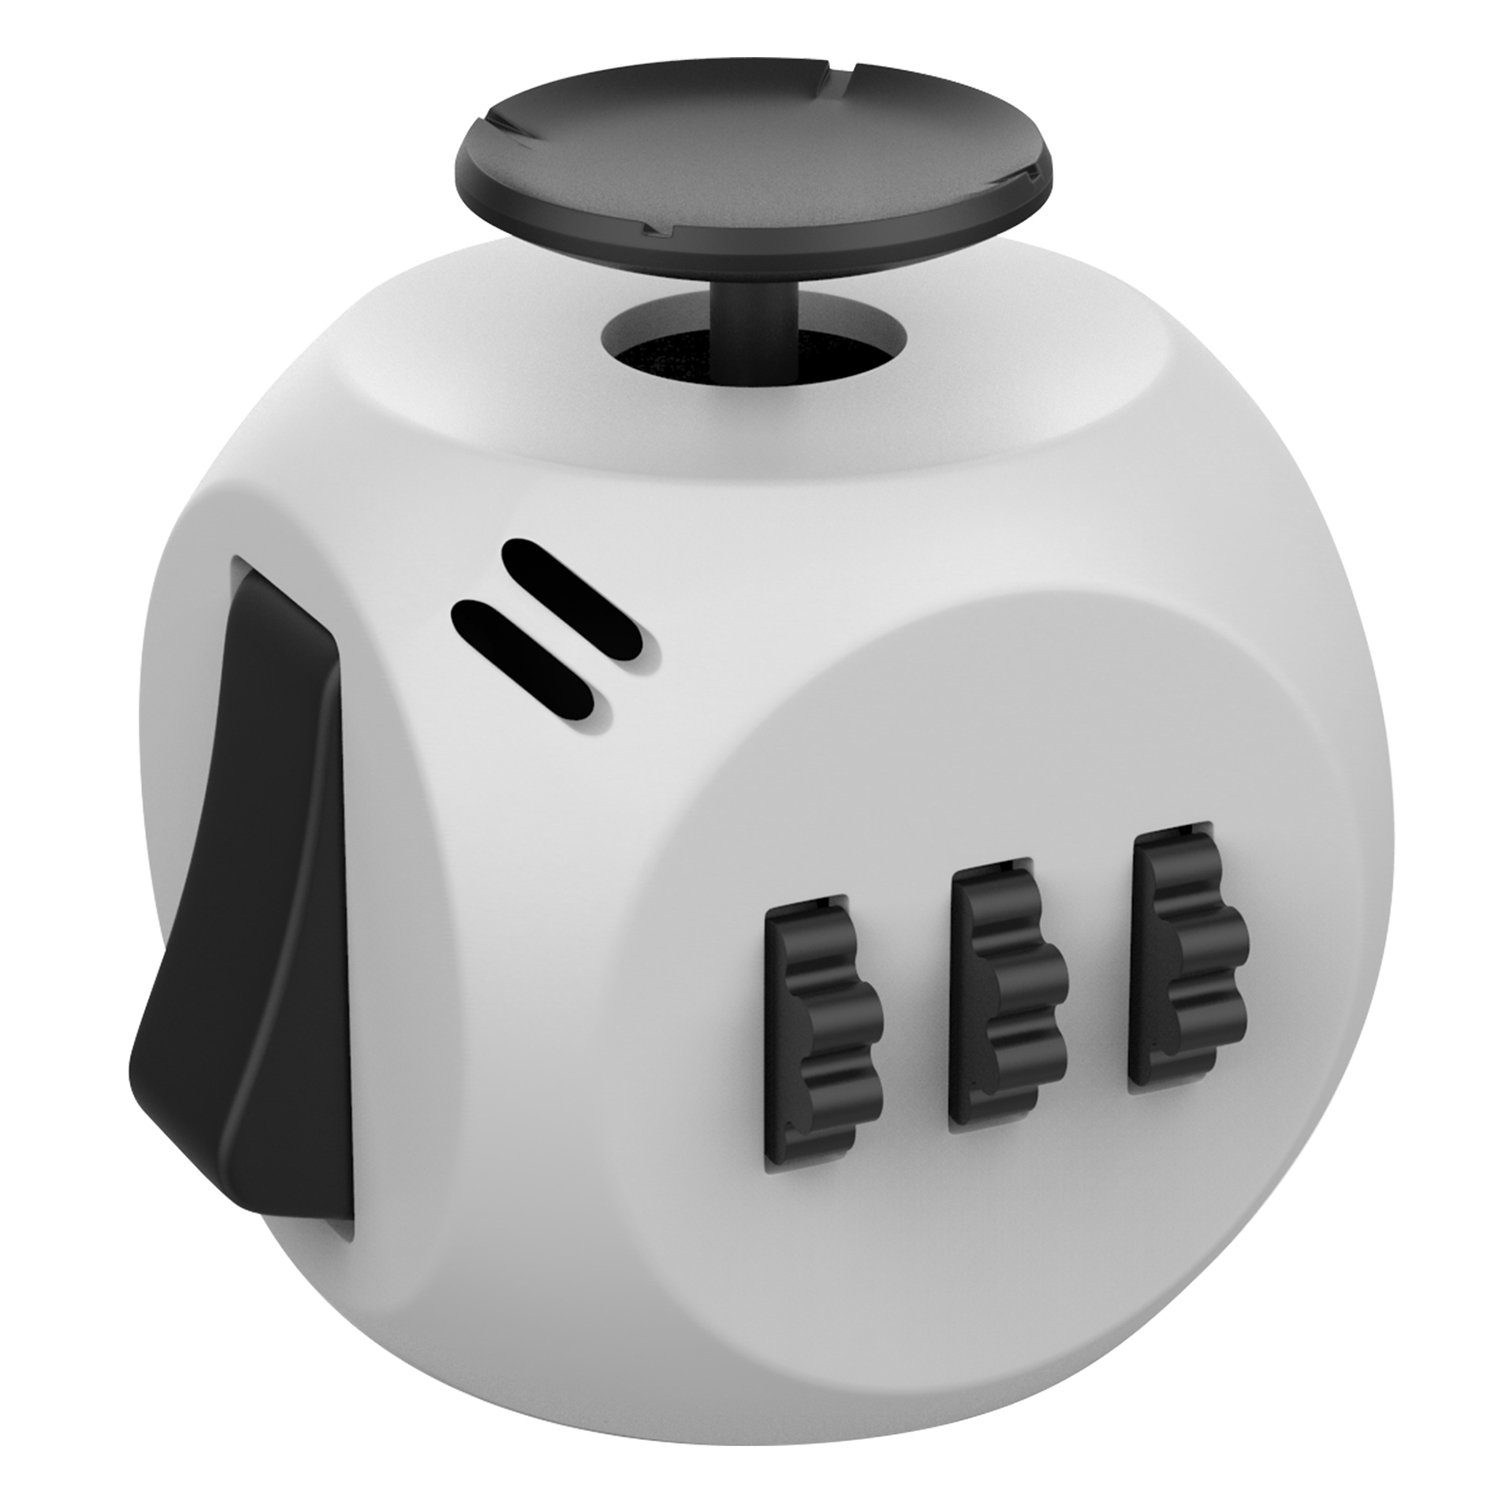 Helect H1037 Fidget Cube Toy Relieves Stress and Anxiety H-1037